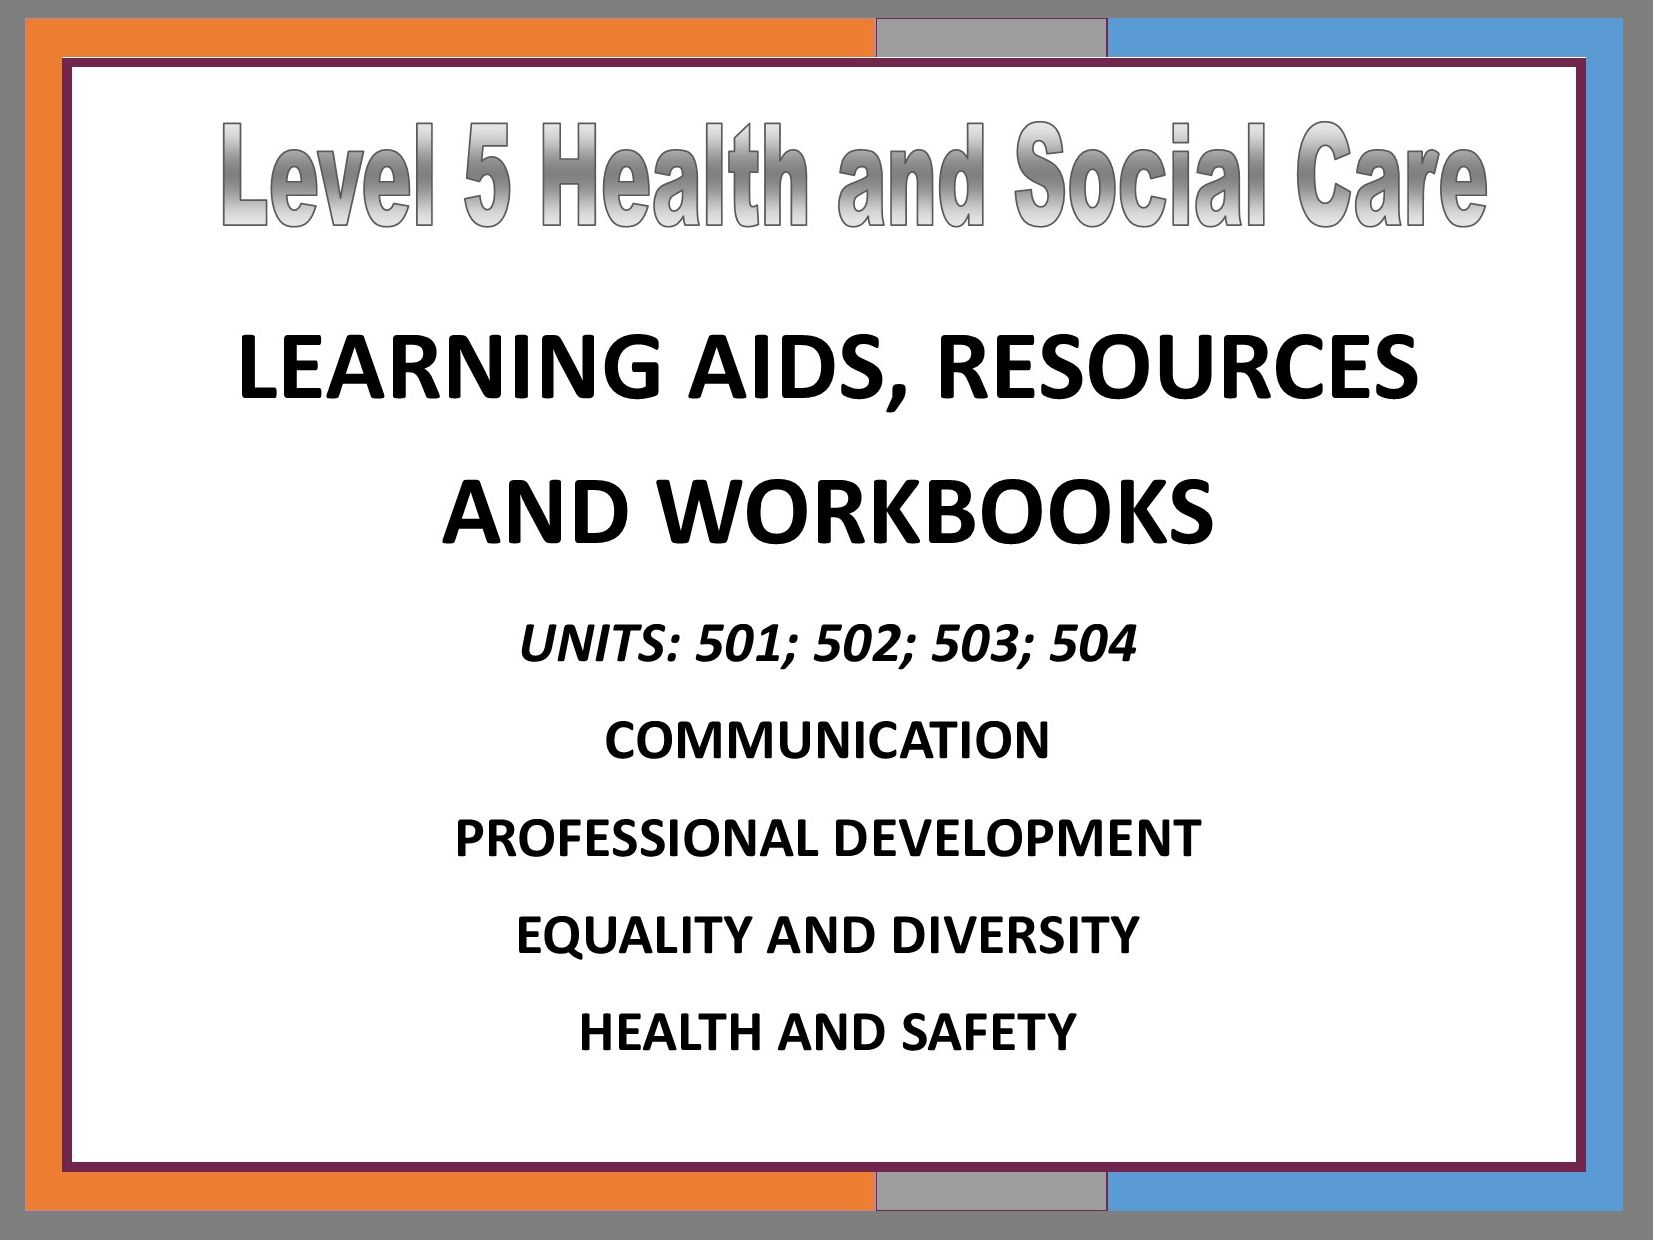 Level 5 H&SC: Units 501, 502, 503 & 504 - Learning aid, resources and workbook